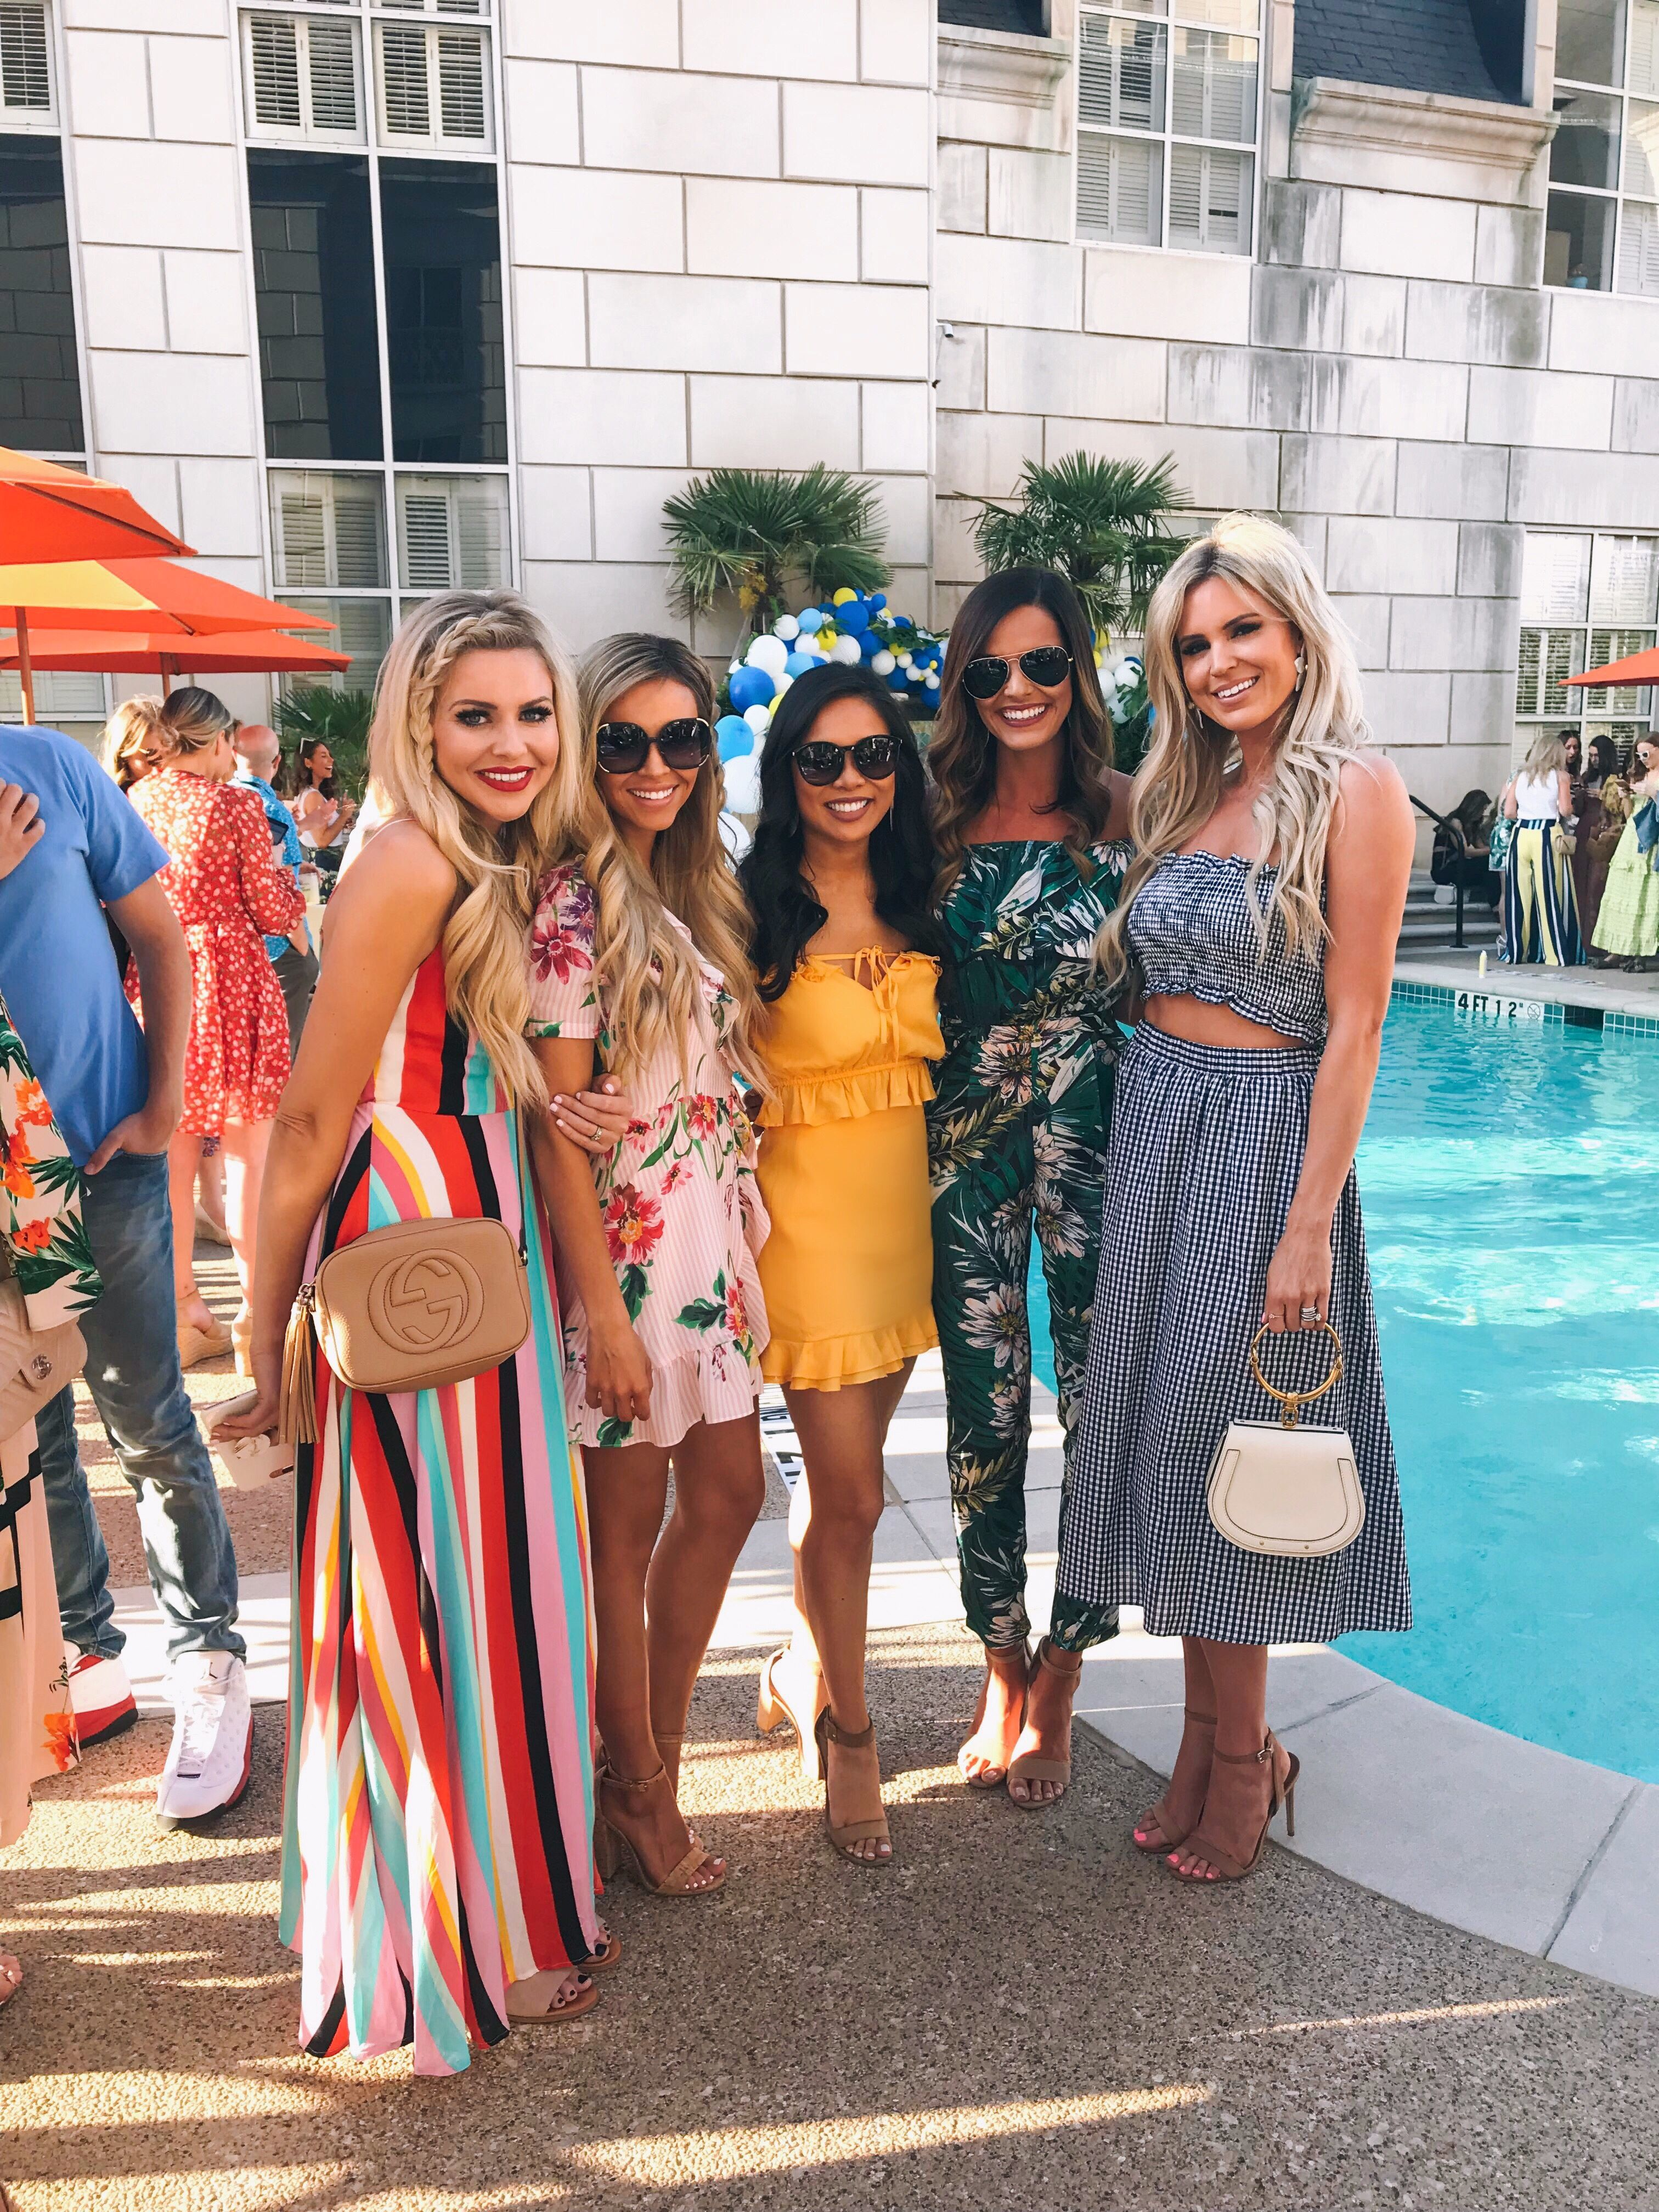 Supergoop Pool Party At Rsthecon 2018 With Melissa Destiny Katy